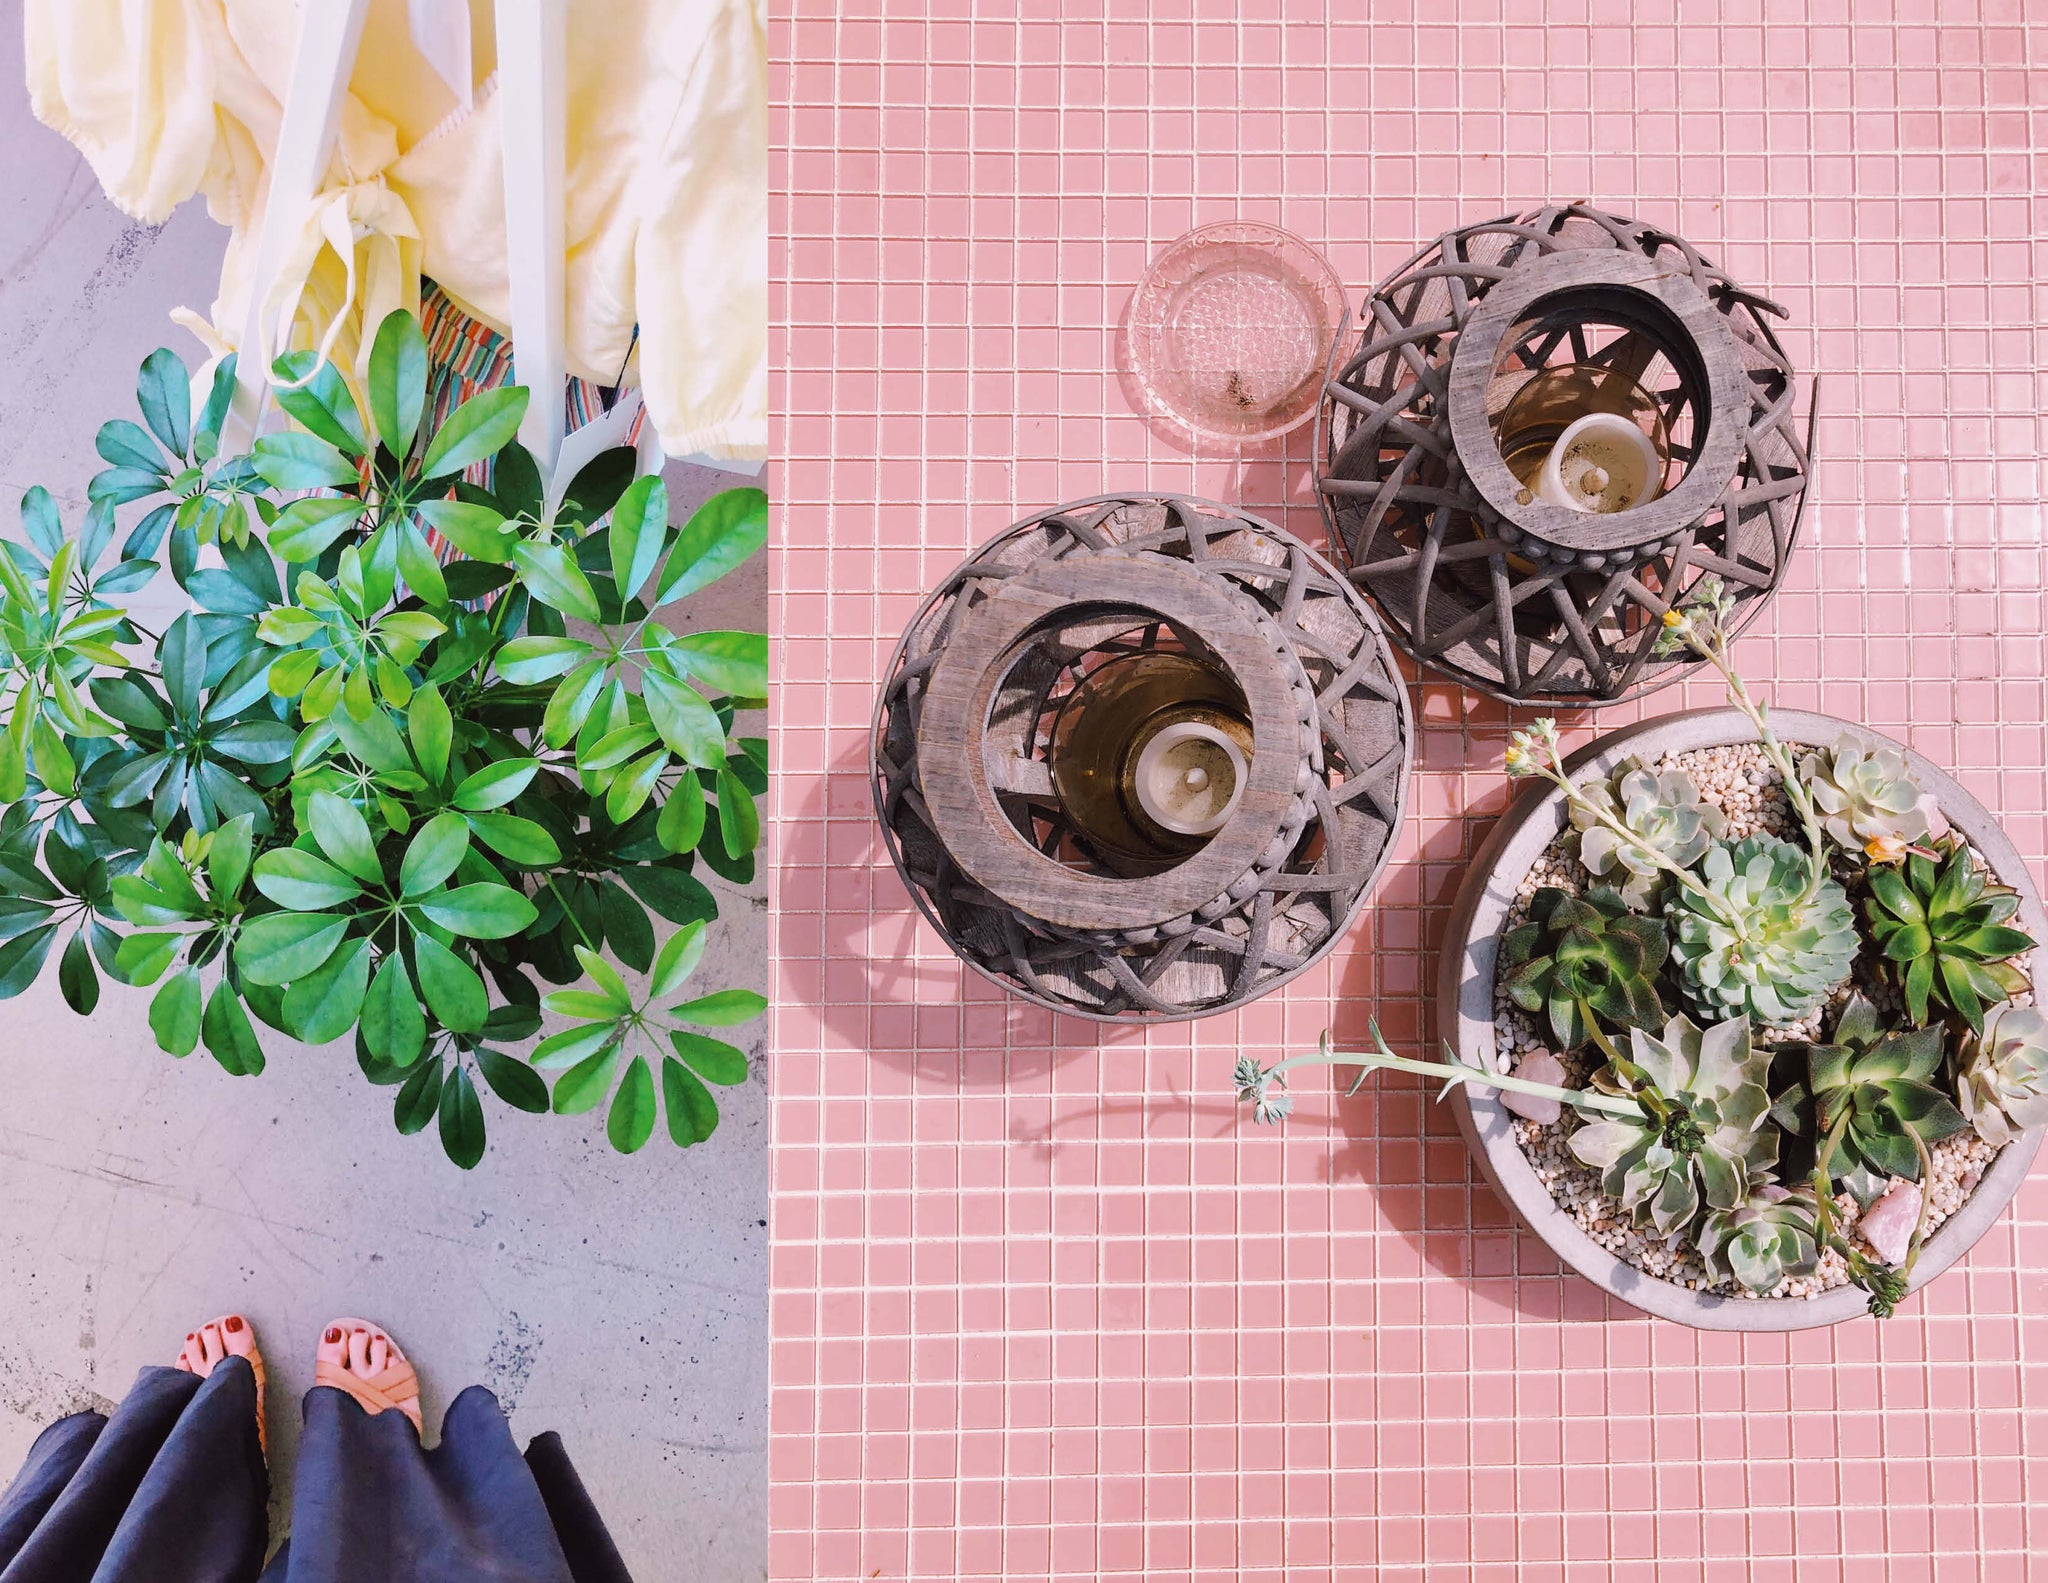 © Wildflora Nike x Revolve Pop-Up Event Los Angeles florist Ventura Blvd Studio City California Original Farmers Market The Grove delivery floral bloom plant arrangement color palette pastel light pale pink green tree white ceramic custom ceramic planter pot container clothes display bright fun alive cute hipster flat lay pink glass tile candle wood earthy holder succulent concrete bowl umbrella tree from above  summer happy cheerful 2019